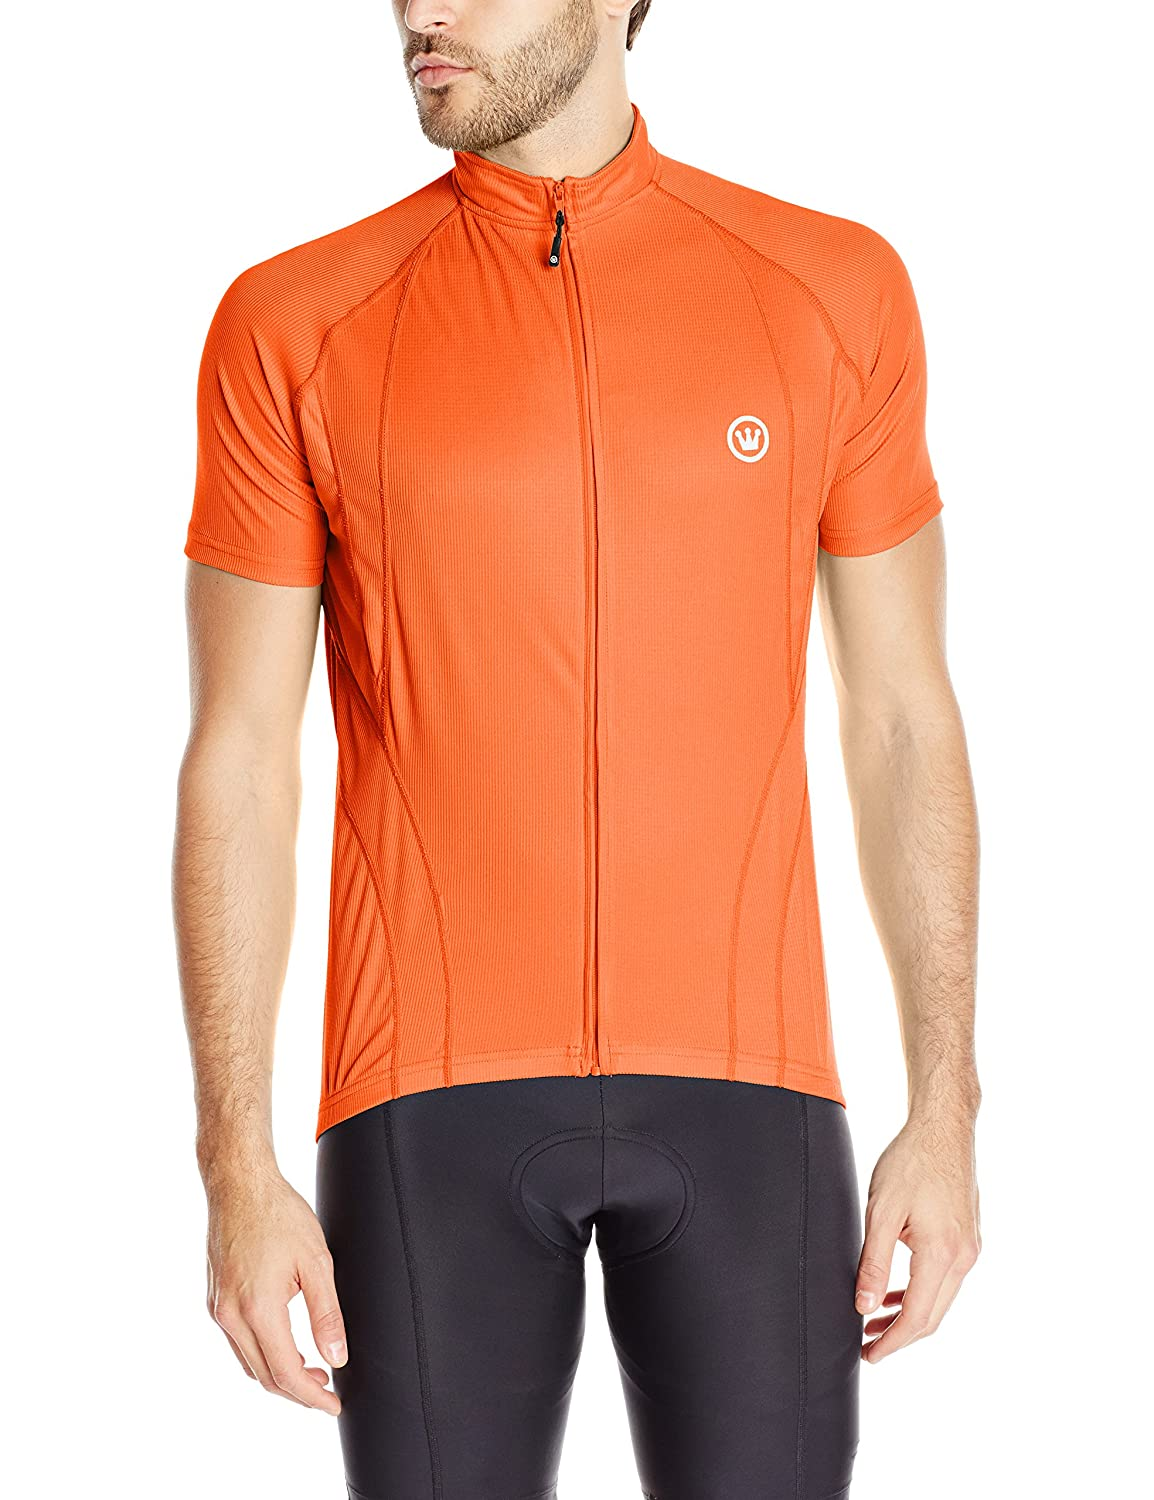 Orange solaire XXL Canari Optic Nova Maillot